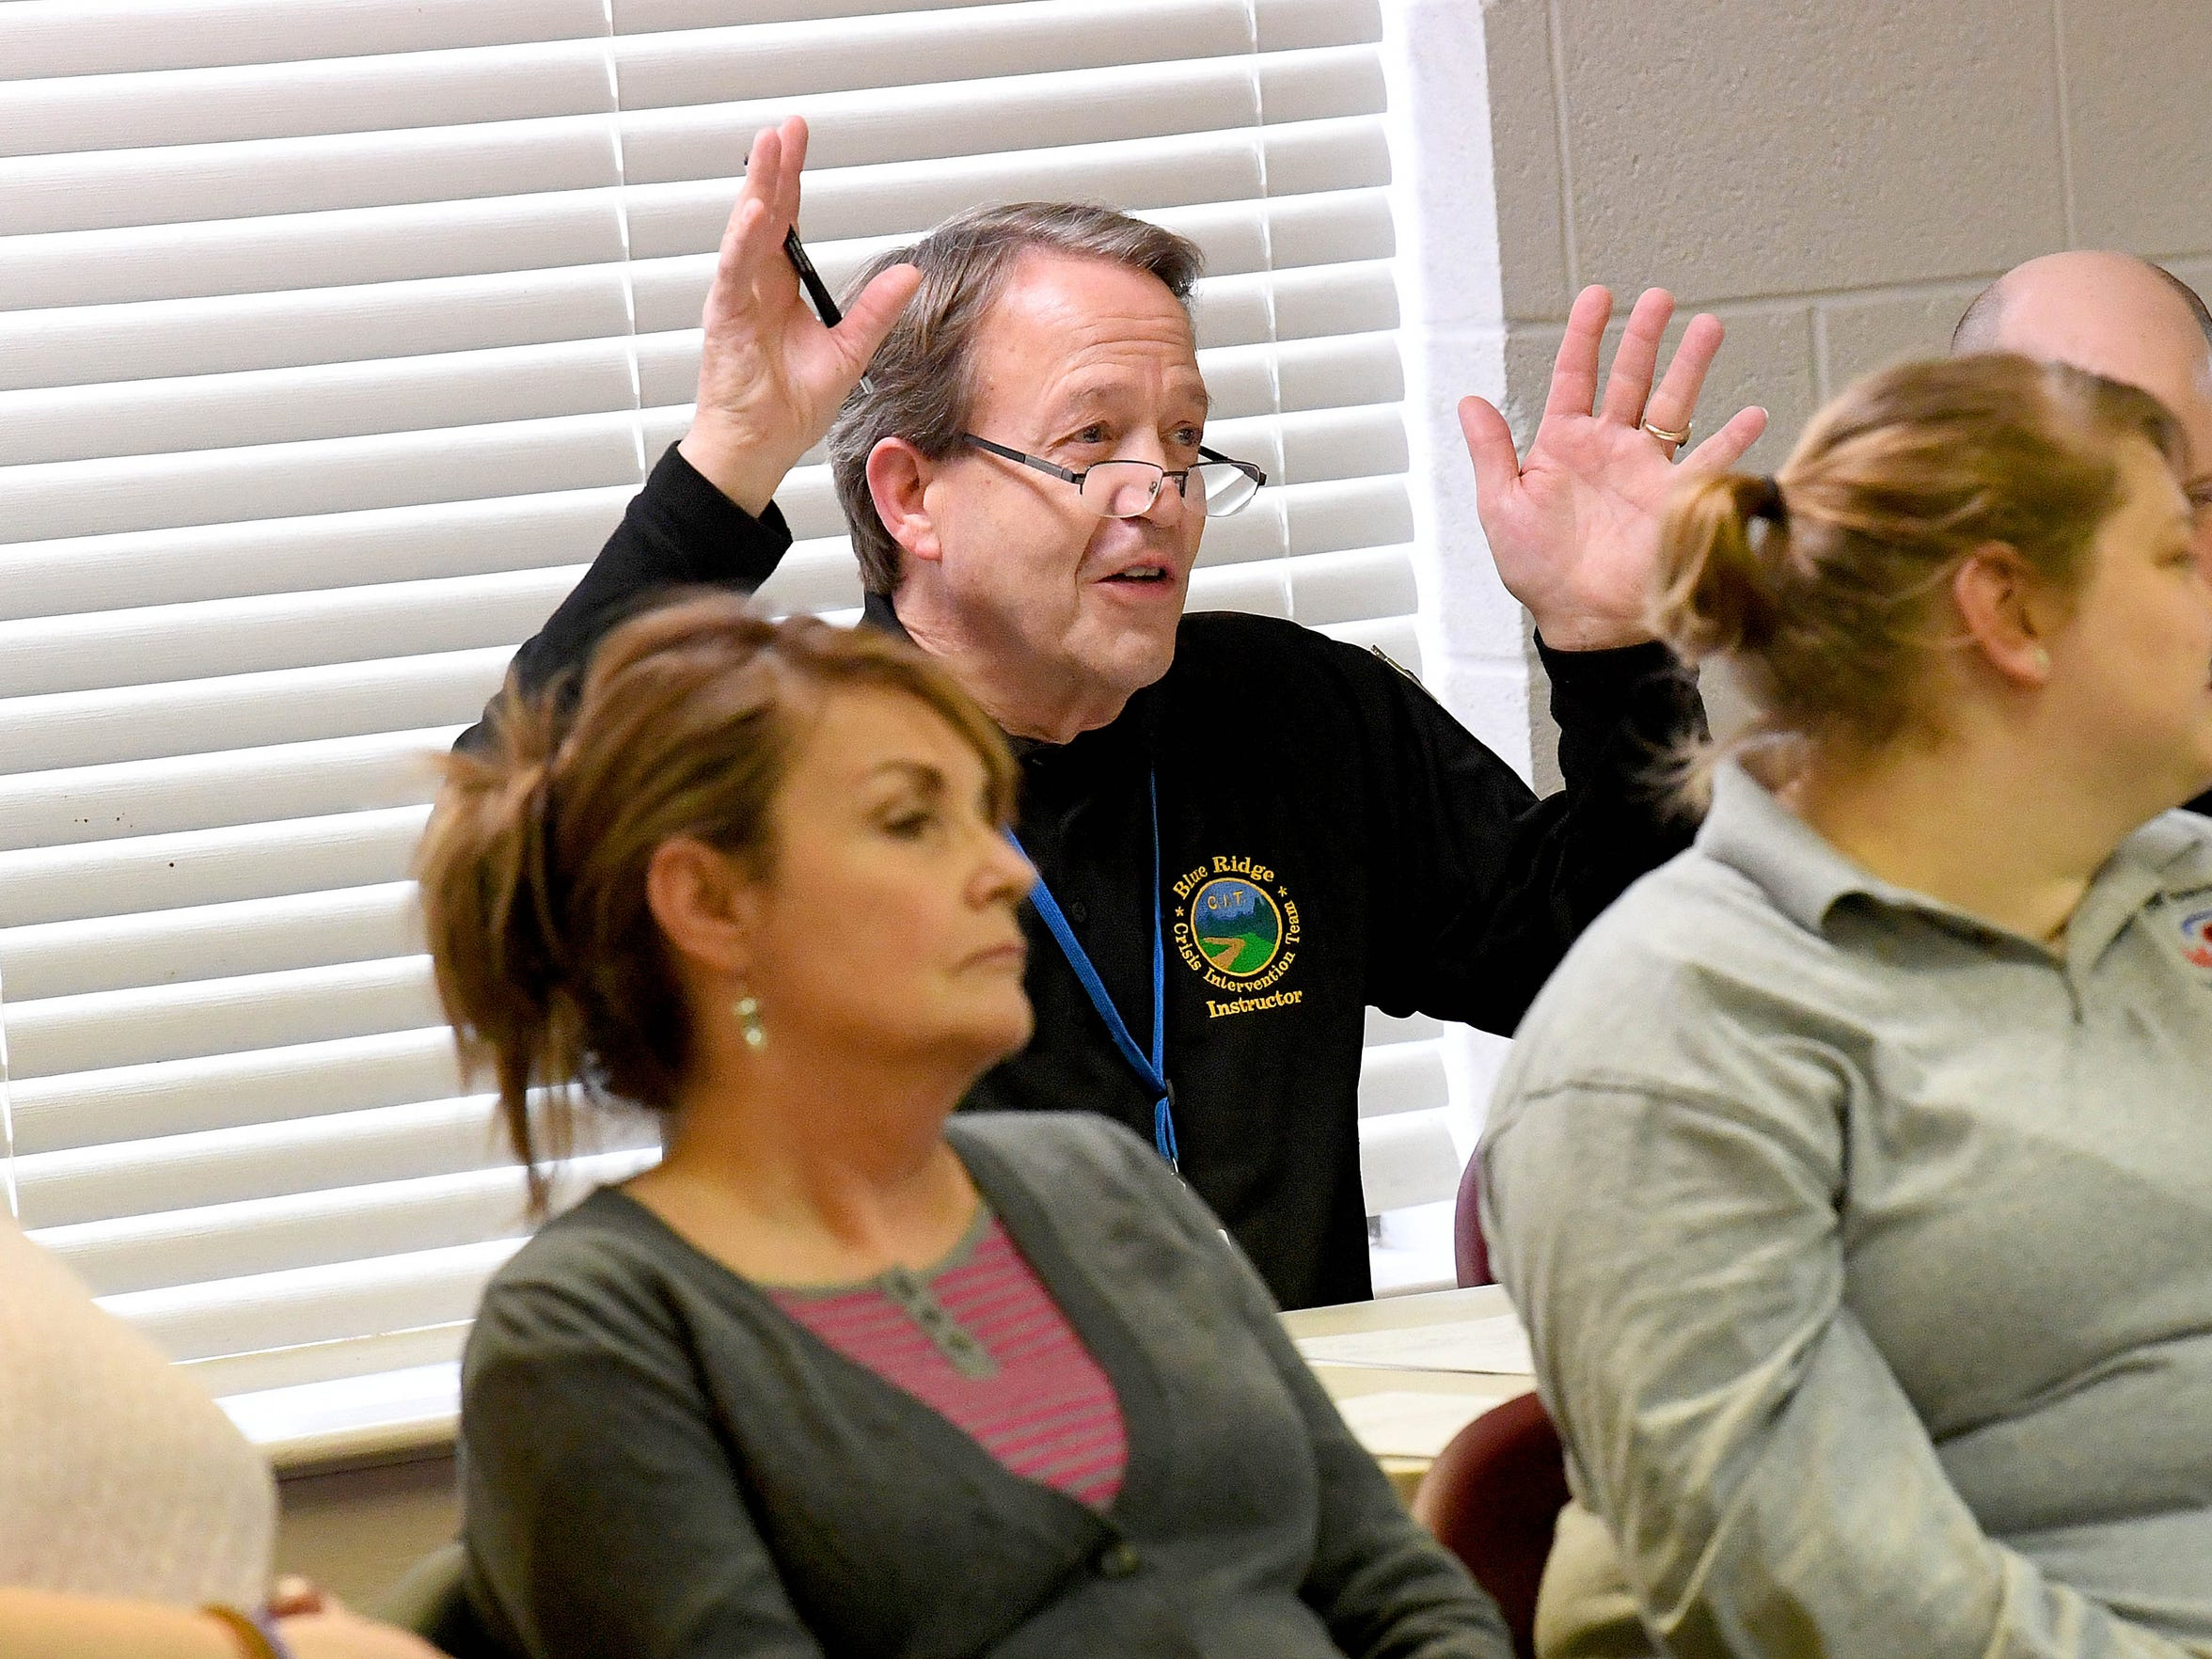 Robert Tucker, assistant director of behavioral health with Valley Community Services Board and CIT trainer, voices his observations to students who just finished trying to deescalate a crisis situation as part of roleplaying exercise during Crisis Intervention Team (CIT) training held in Staunton on March 7, 2018.